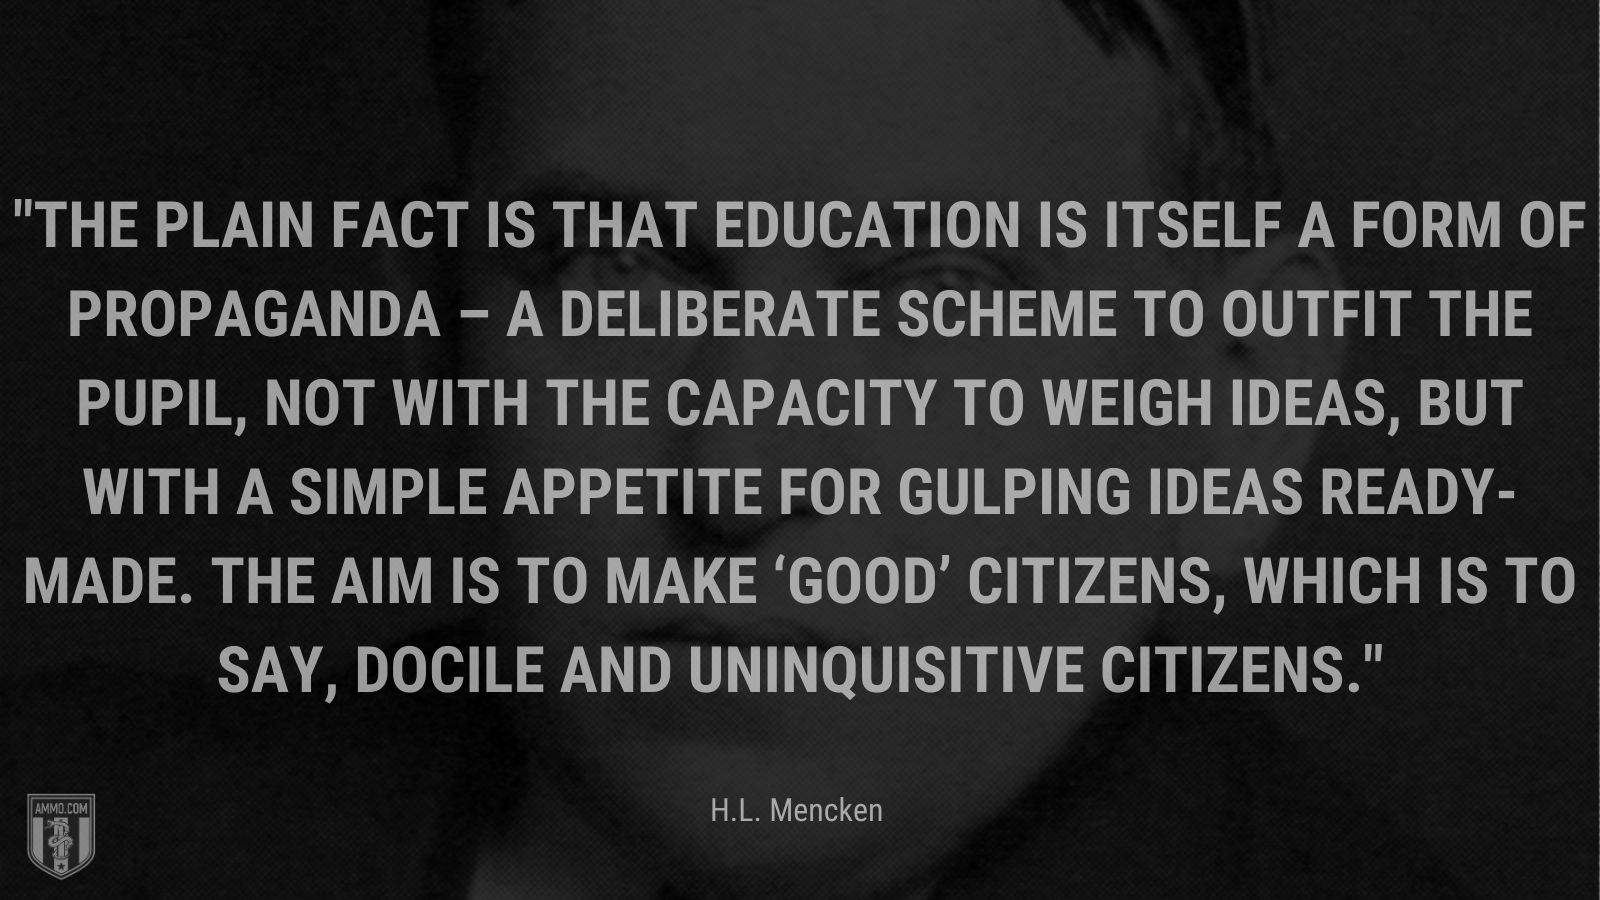 """""""The plain fact is that education is itself a form of propaganda – a deliberate scheme to outfit the pupil, not with the capacity to weigh ideas, but with a simple appetite for gulping ideas ready-made. The aim is to make 'good' citizens, which is to say, docile and uninquisitive citizens."""" - H.L. Mencken"""